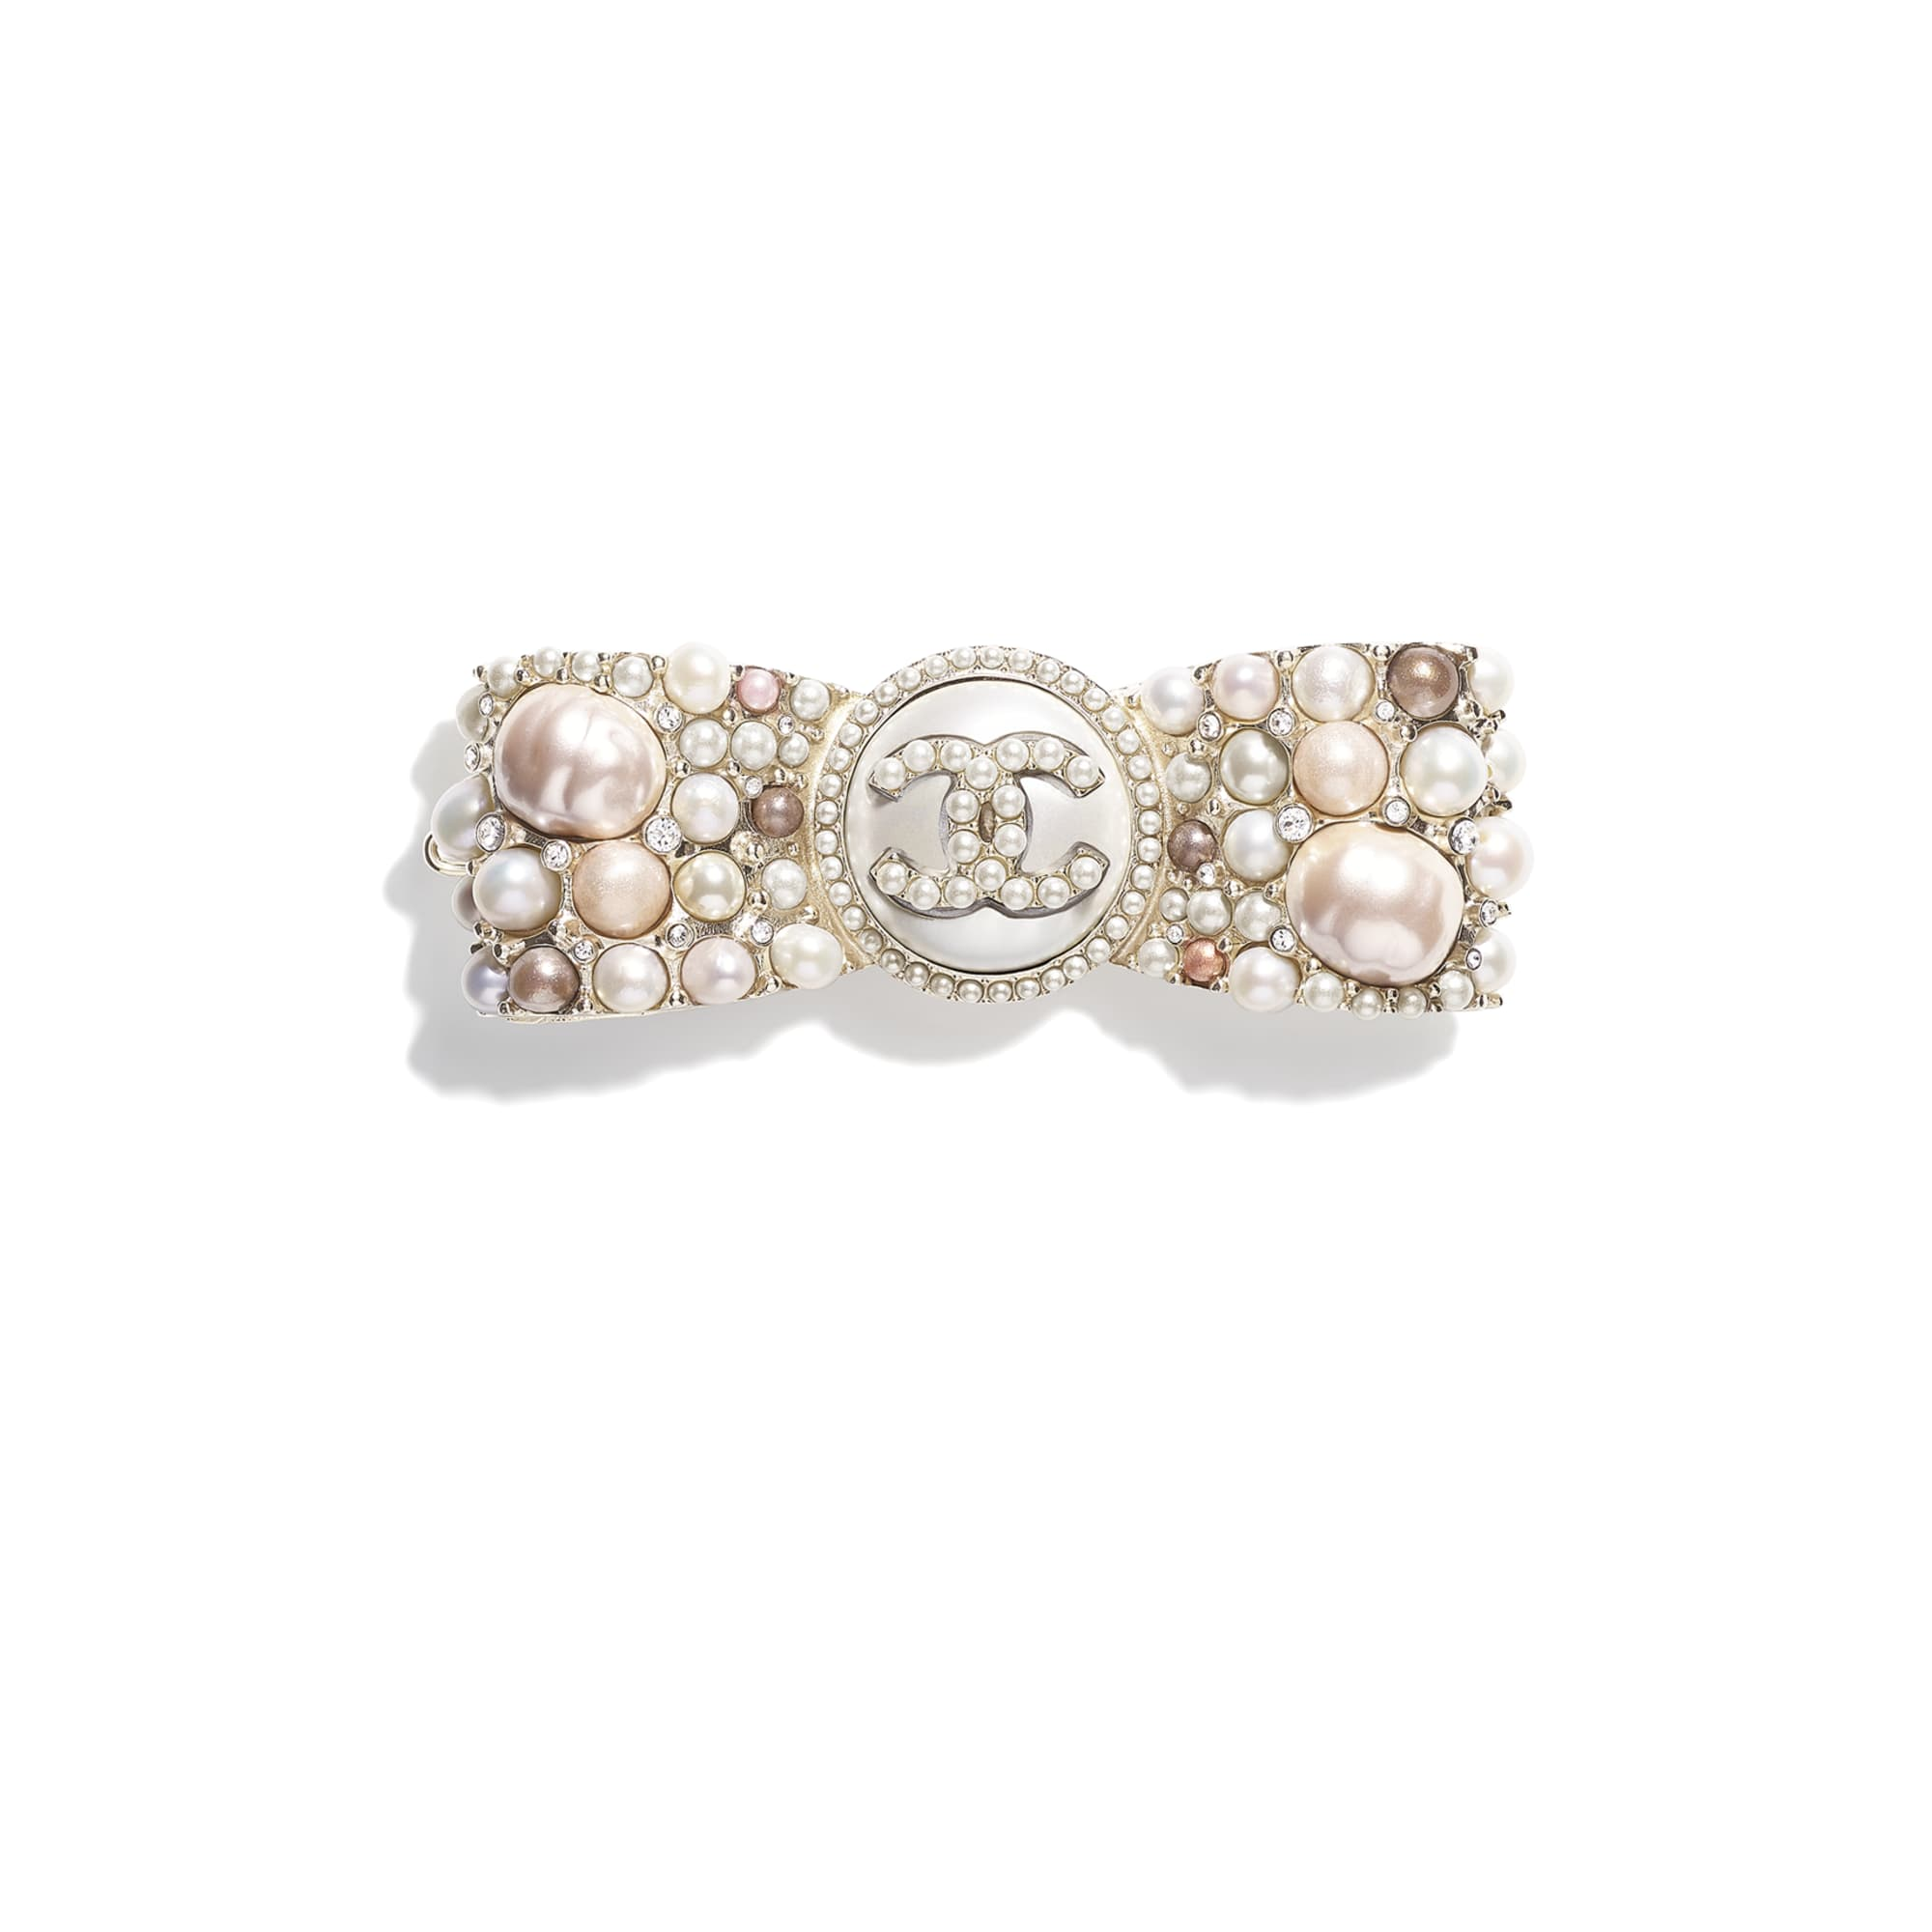 Hair Clip - Gold, Pearly White, Pink & Crystal - Metal, Cultured Fresh Water Pearls, Glass Pearls, Imitation Pearls & Strass - CHANEL - Default view - see standard sized version